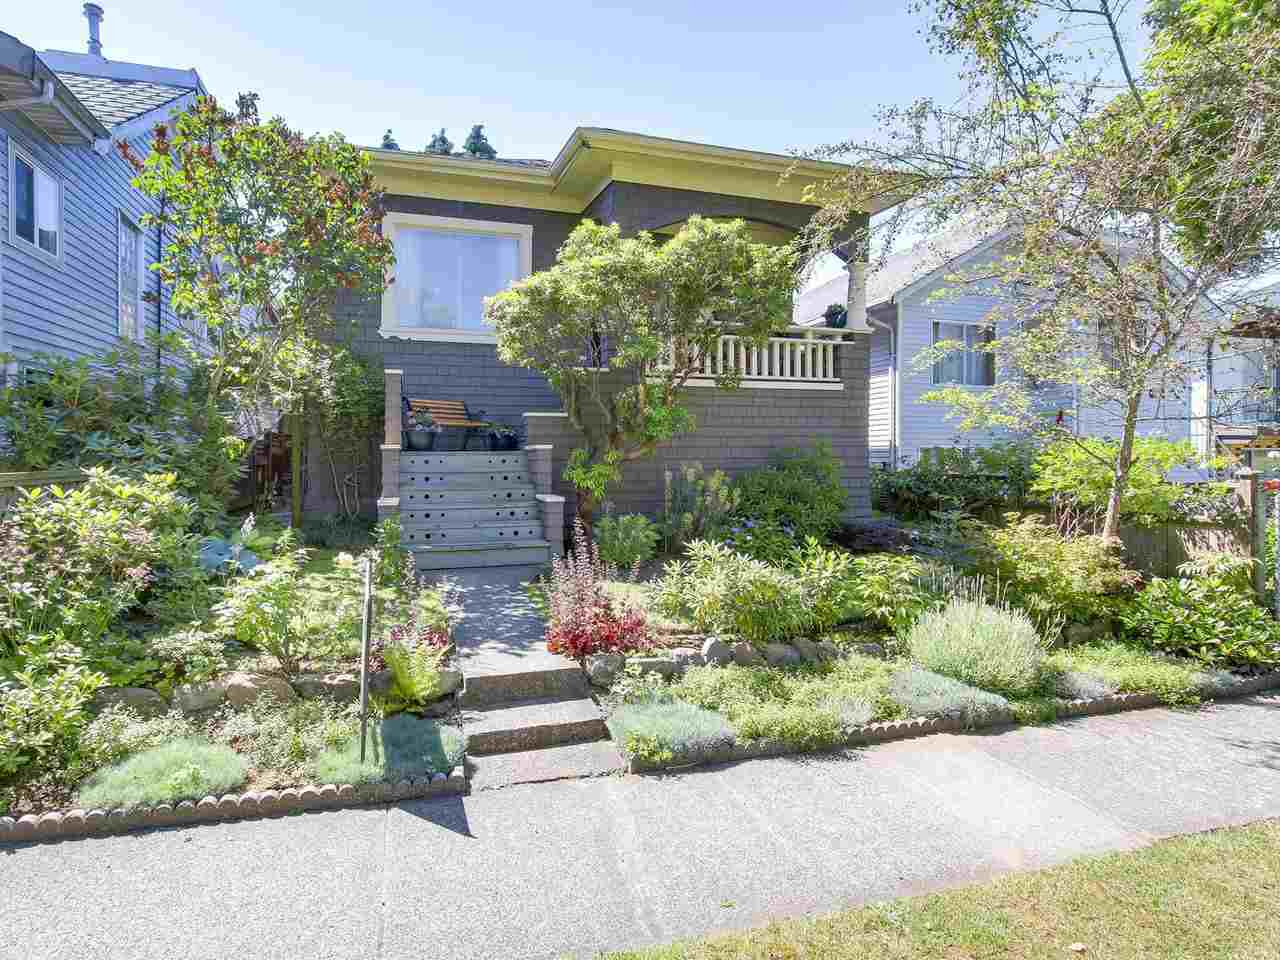 Main Photo: 5239 CHESTER Street in Vancouver: Fraser VE House for sale (Vancouver East)  : MLS® # R2186295